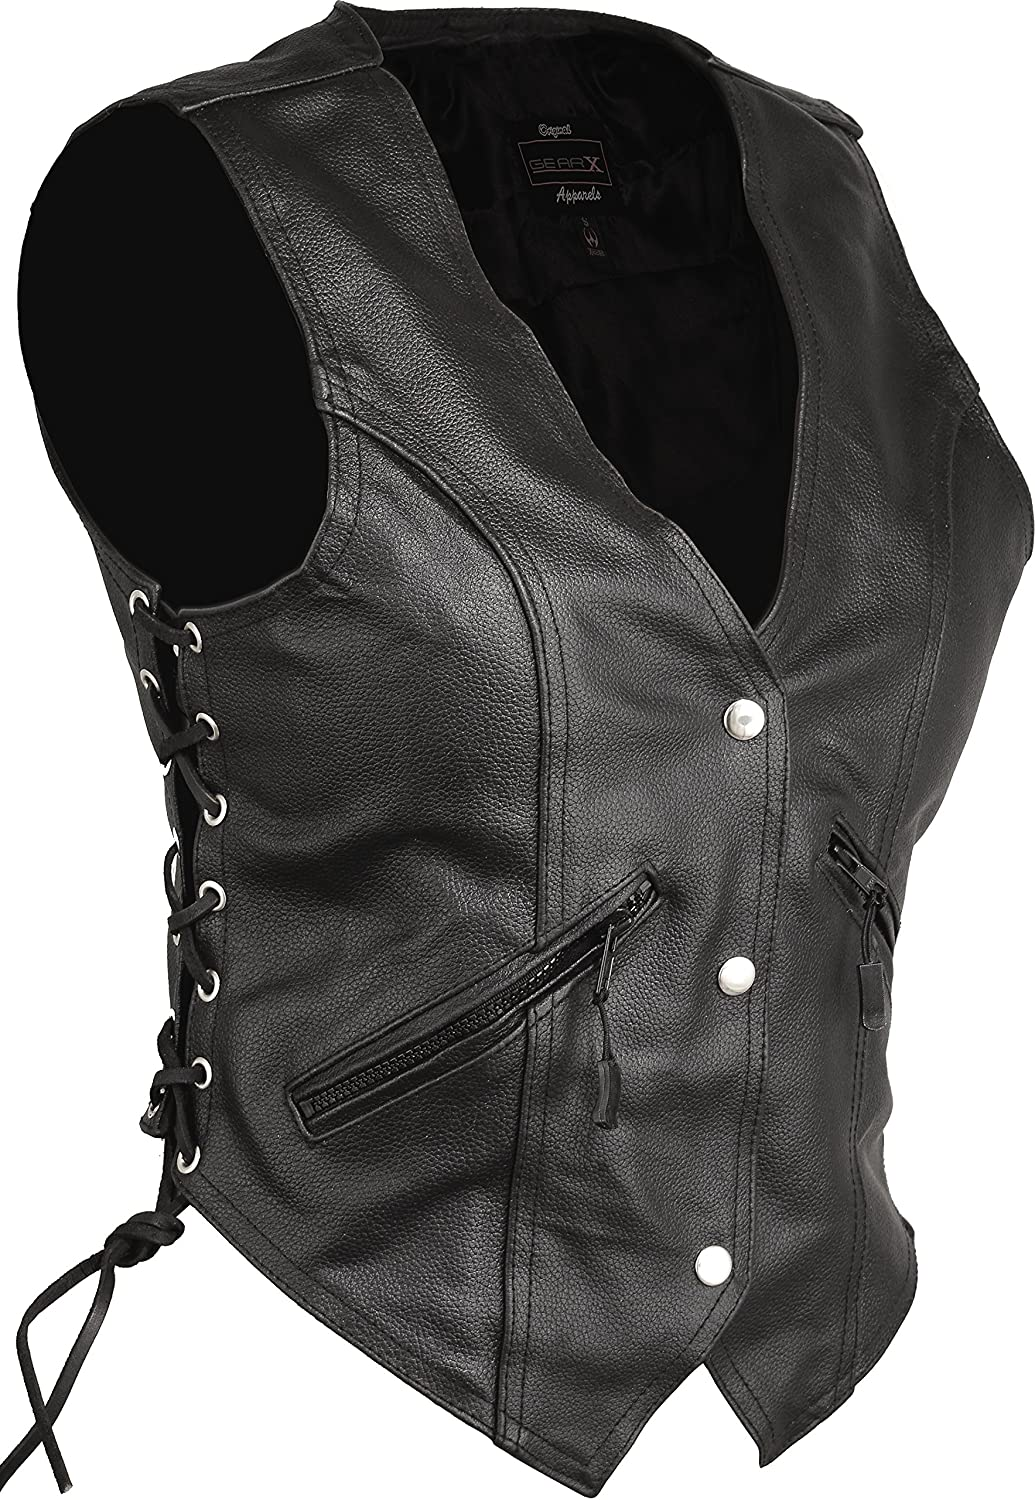 Womens Leather Waistcoat Motorcycle Vitange Biker Fashion (S) GearX